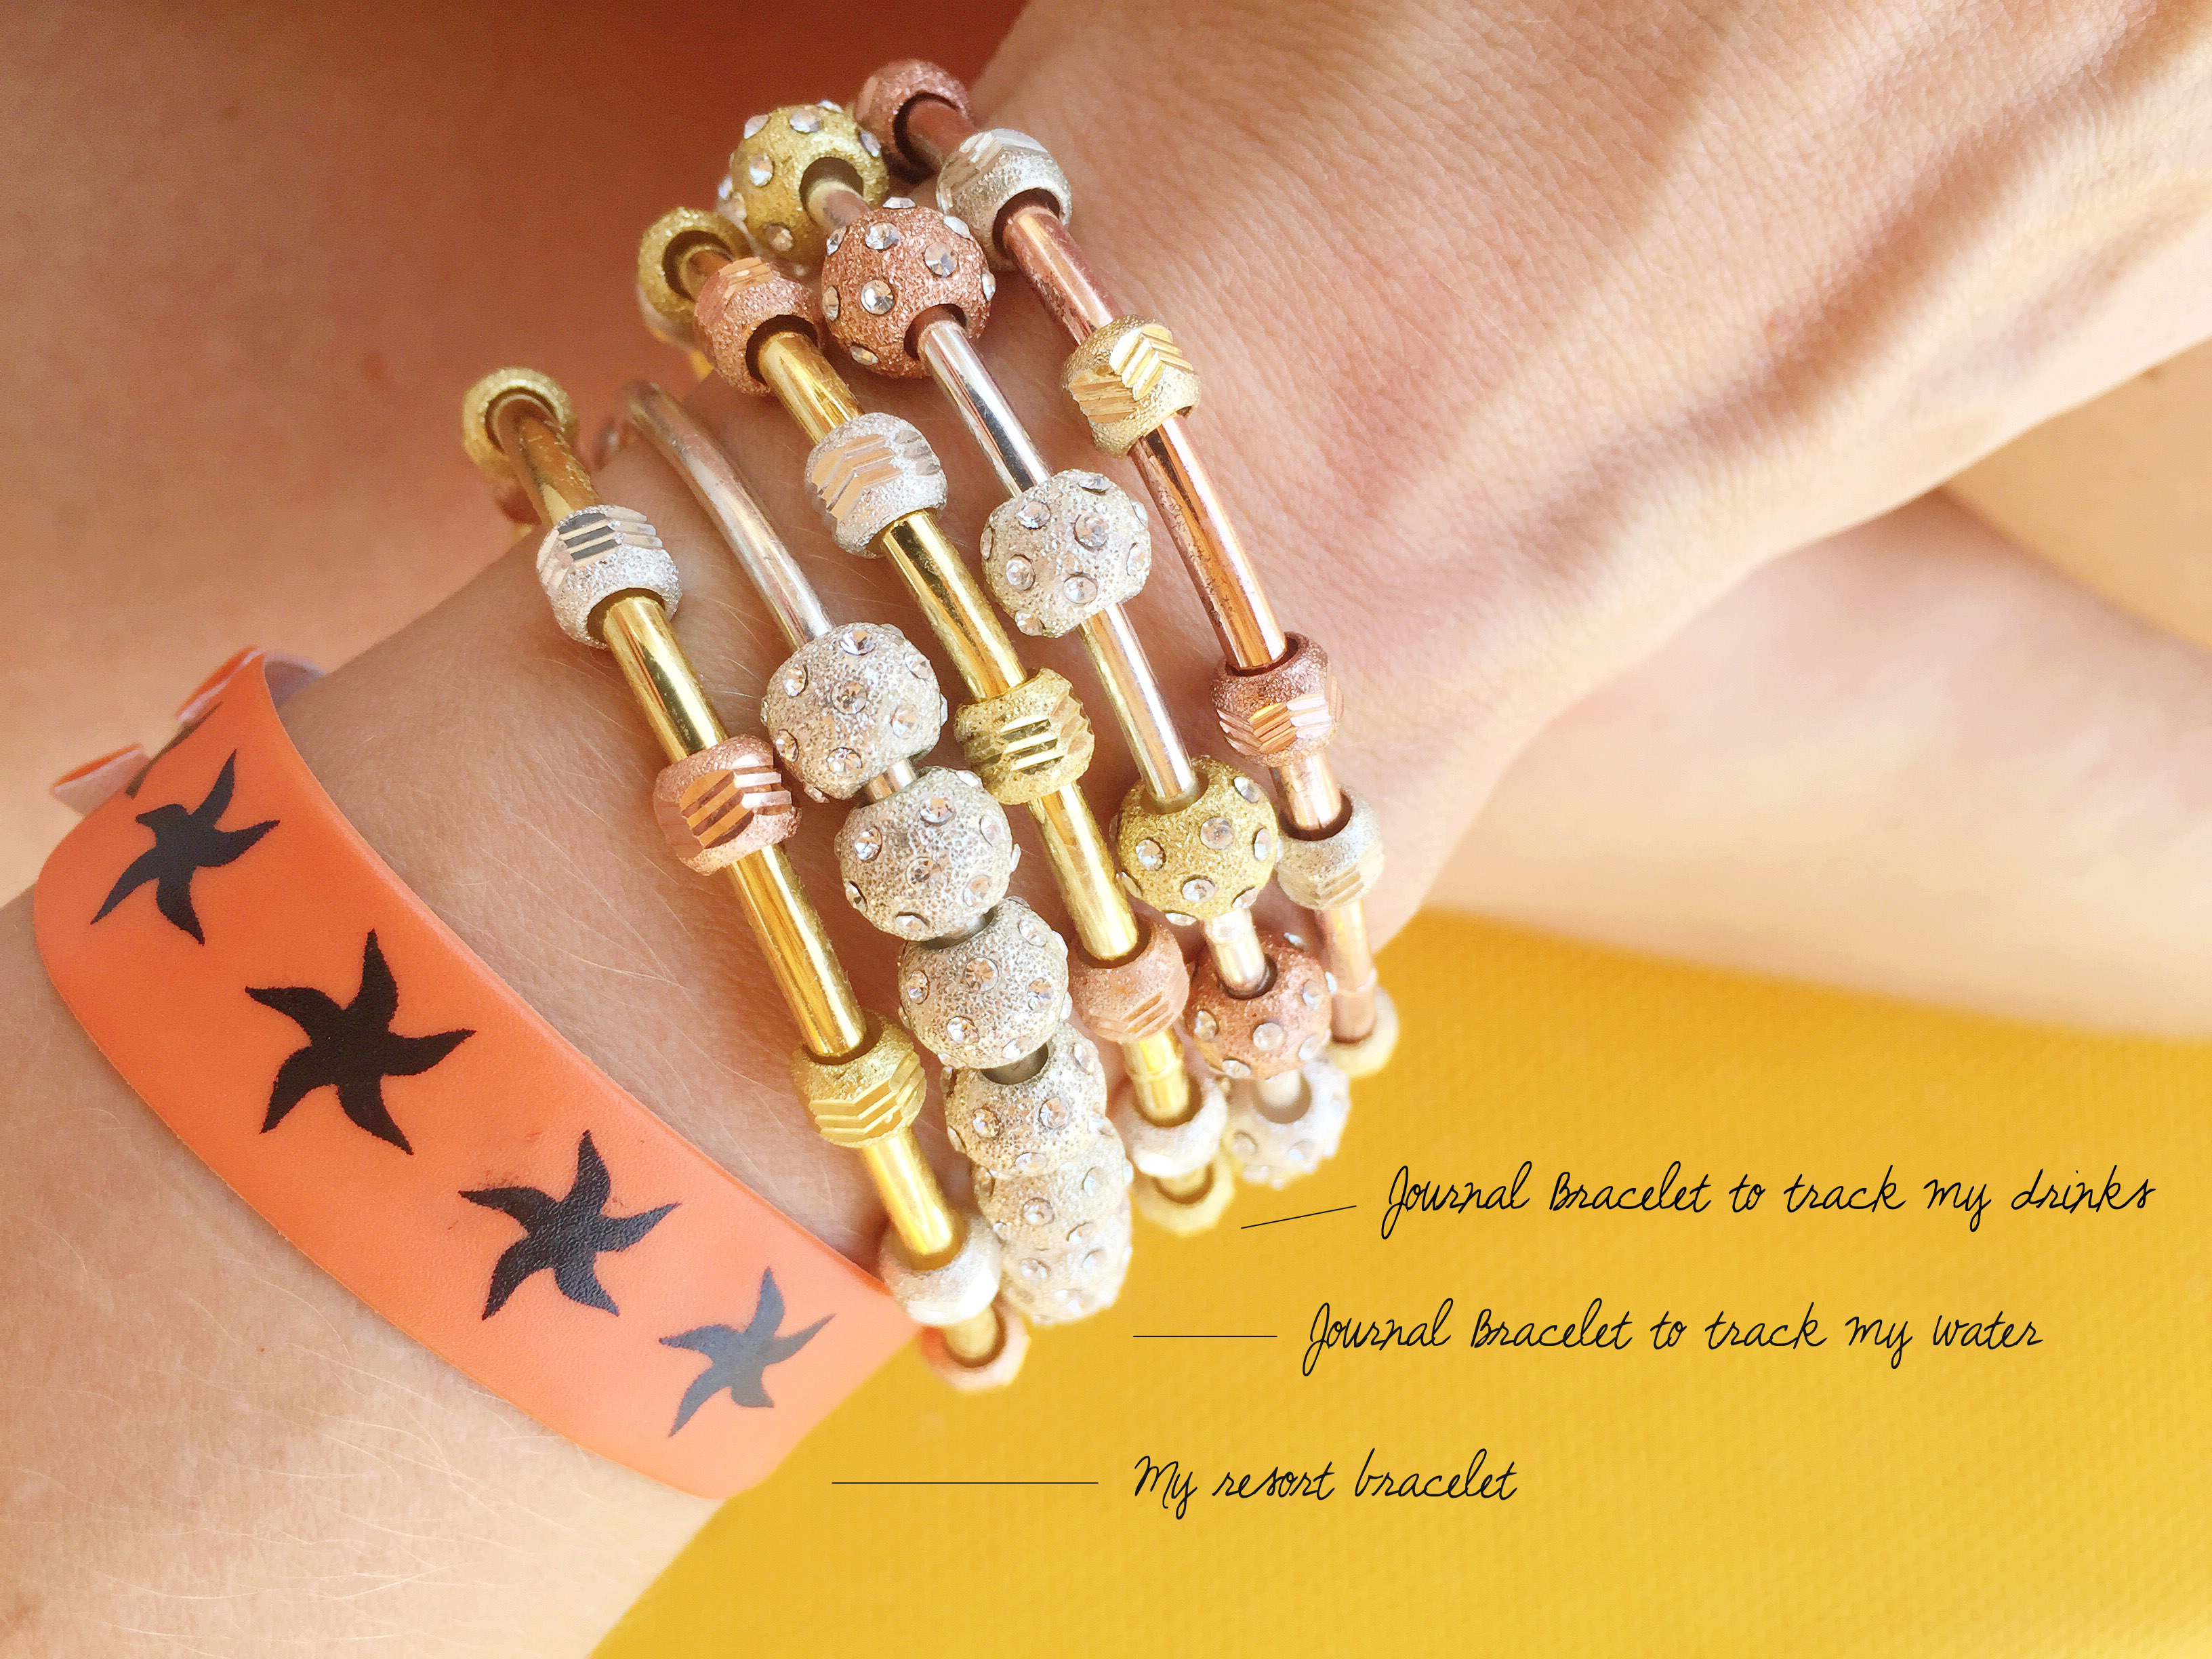 count me healthy bracelets for all-inclusive resort